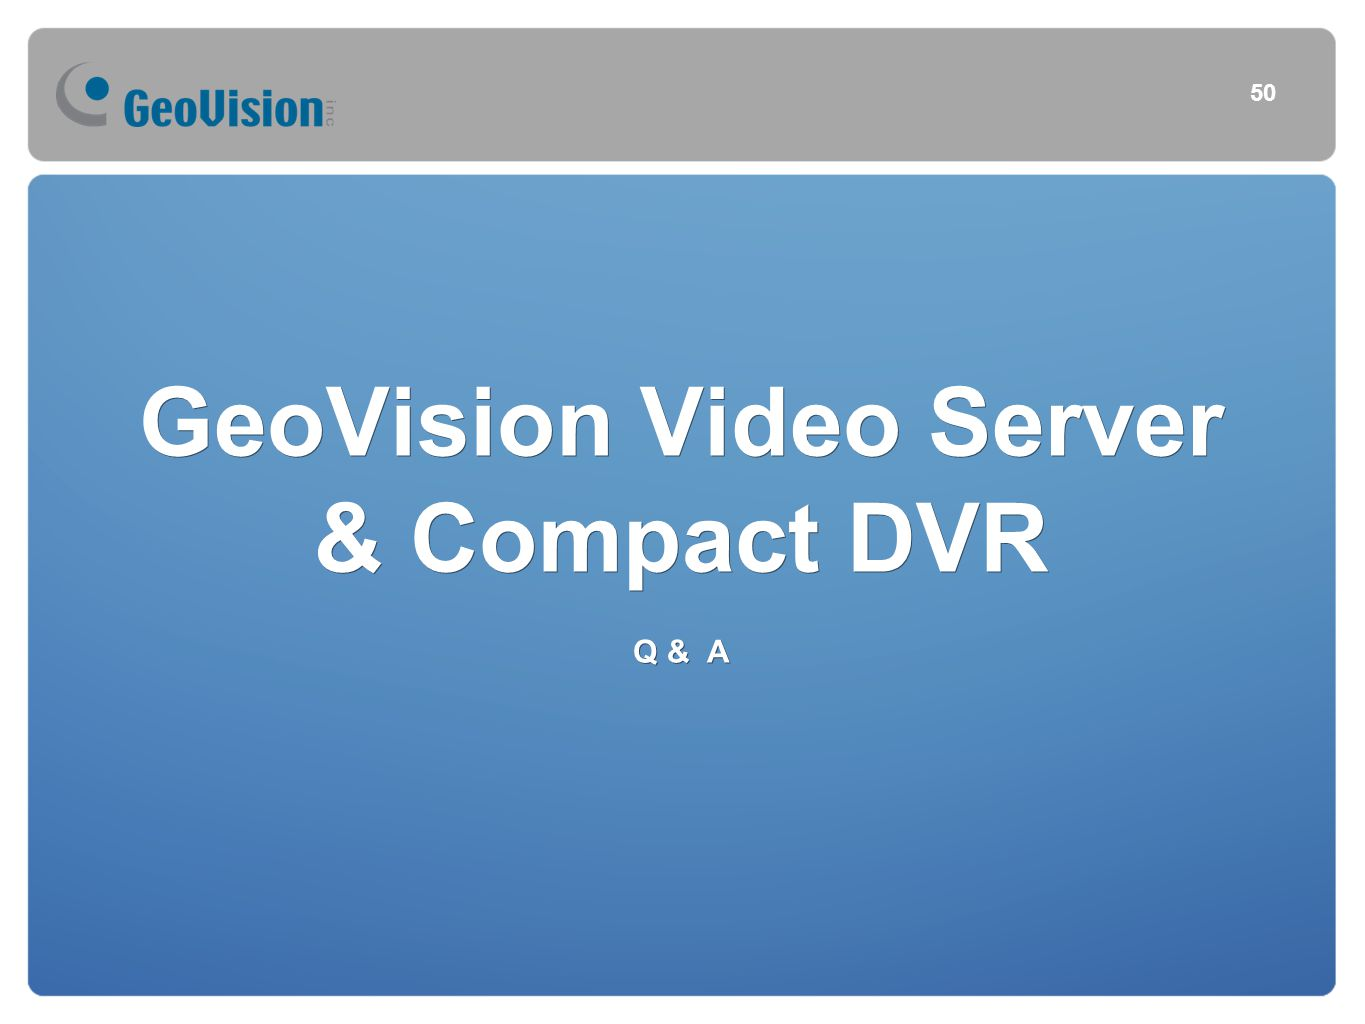 GeoVision Video Server & Compact DVR Q & A